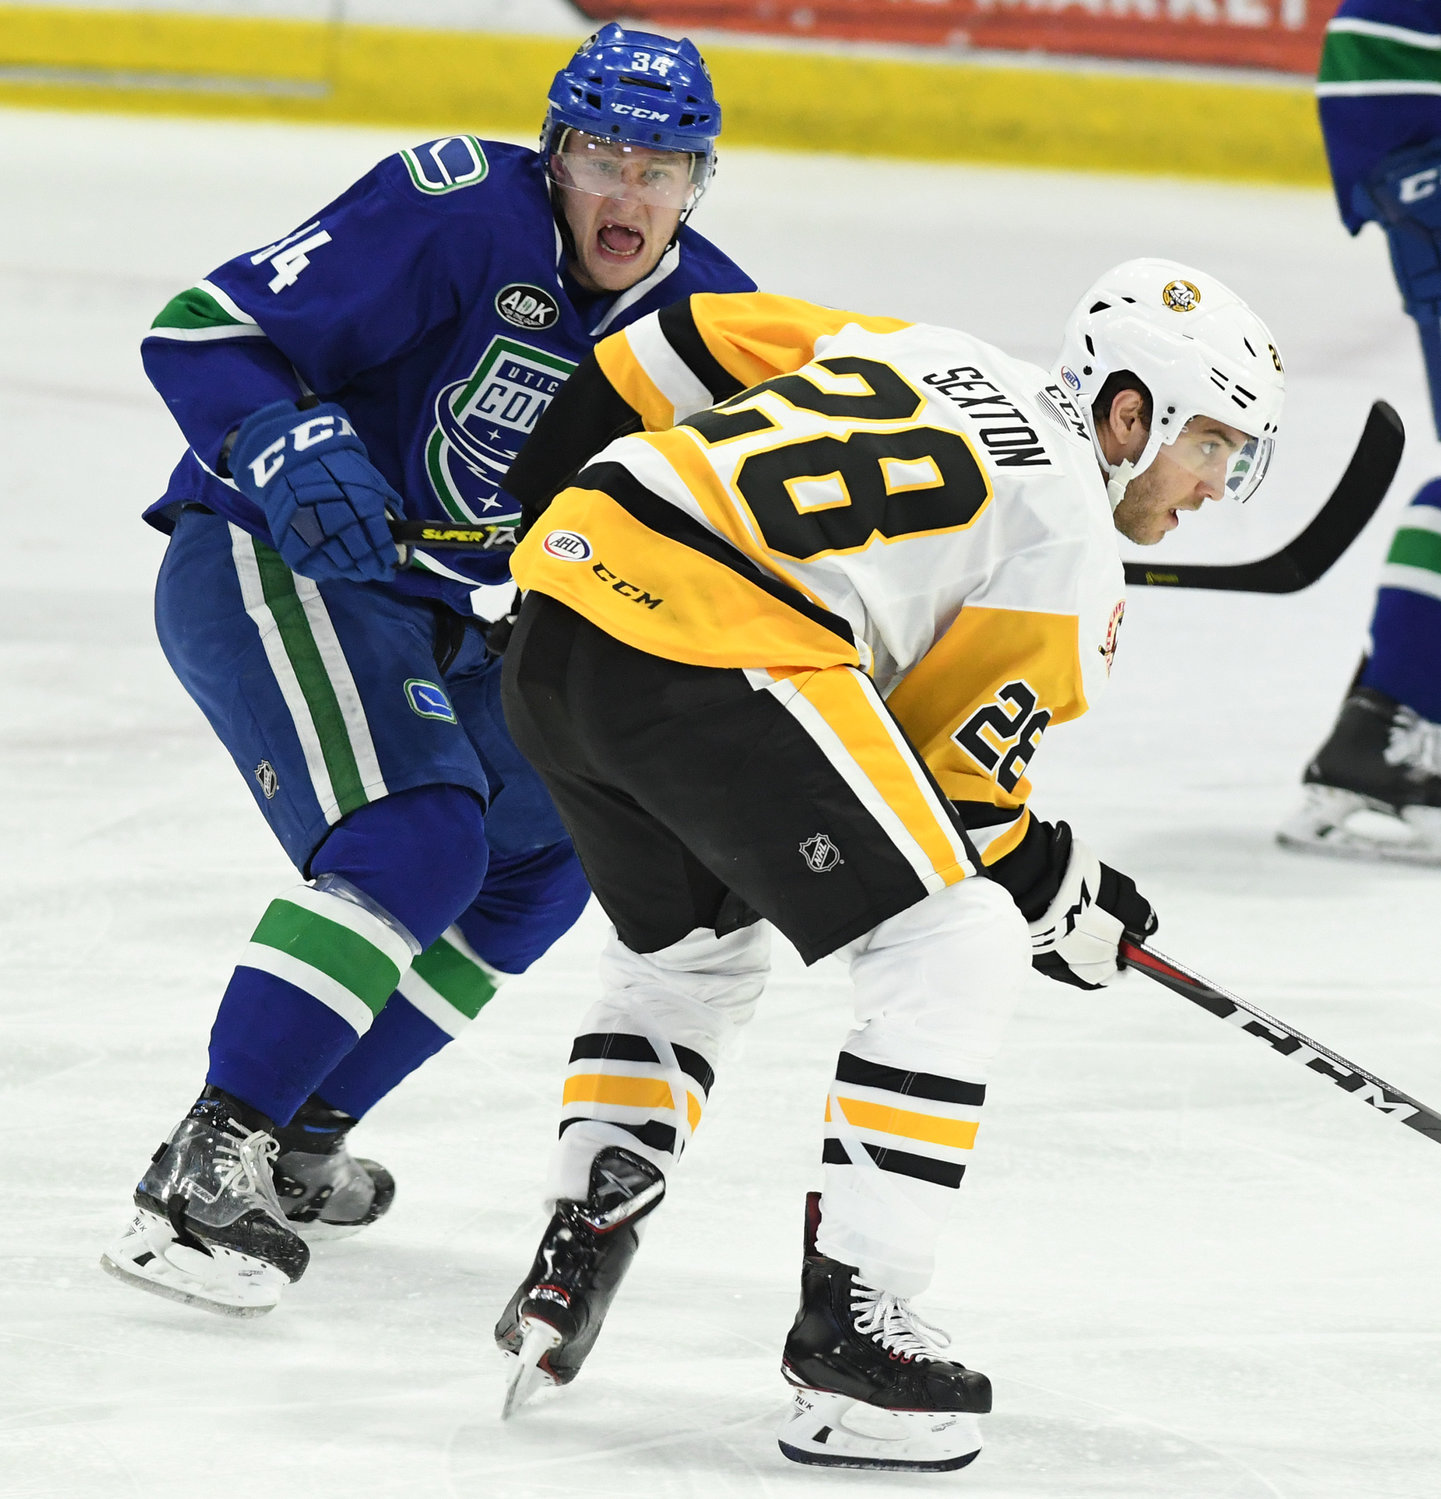 TOUGH GAME — Comets captain Carter Bancks, left, and Ben Sexton of Wilkes-Barre/Scranton  jockey for position in Friday night's game at the Utica Aud. The Comets won 8-1 in a game that included seven fights.